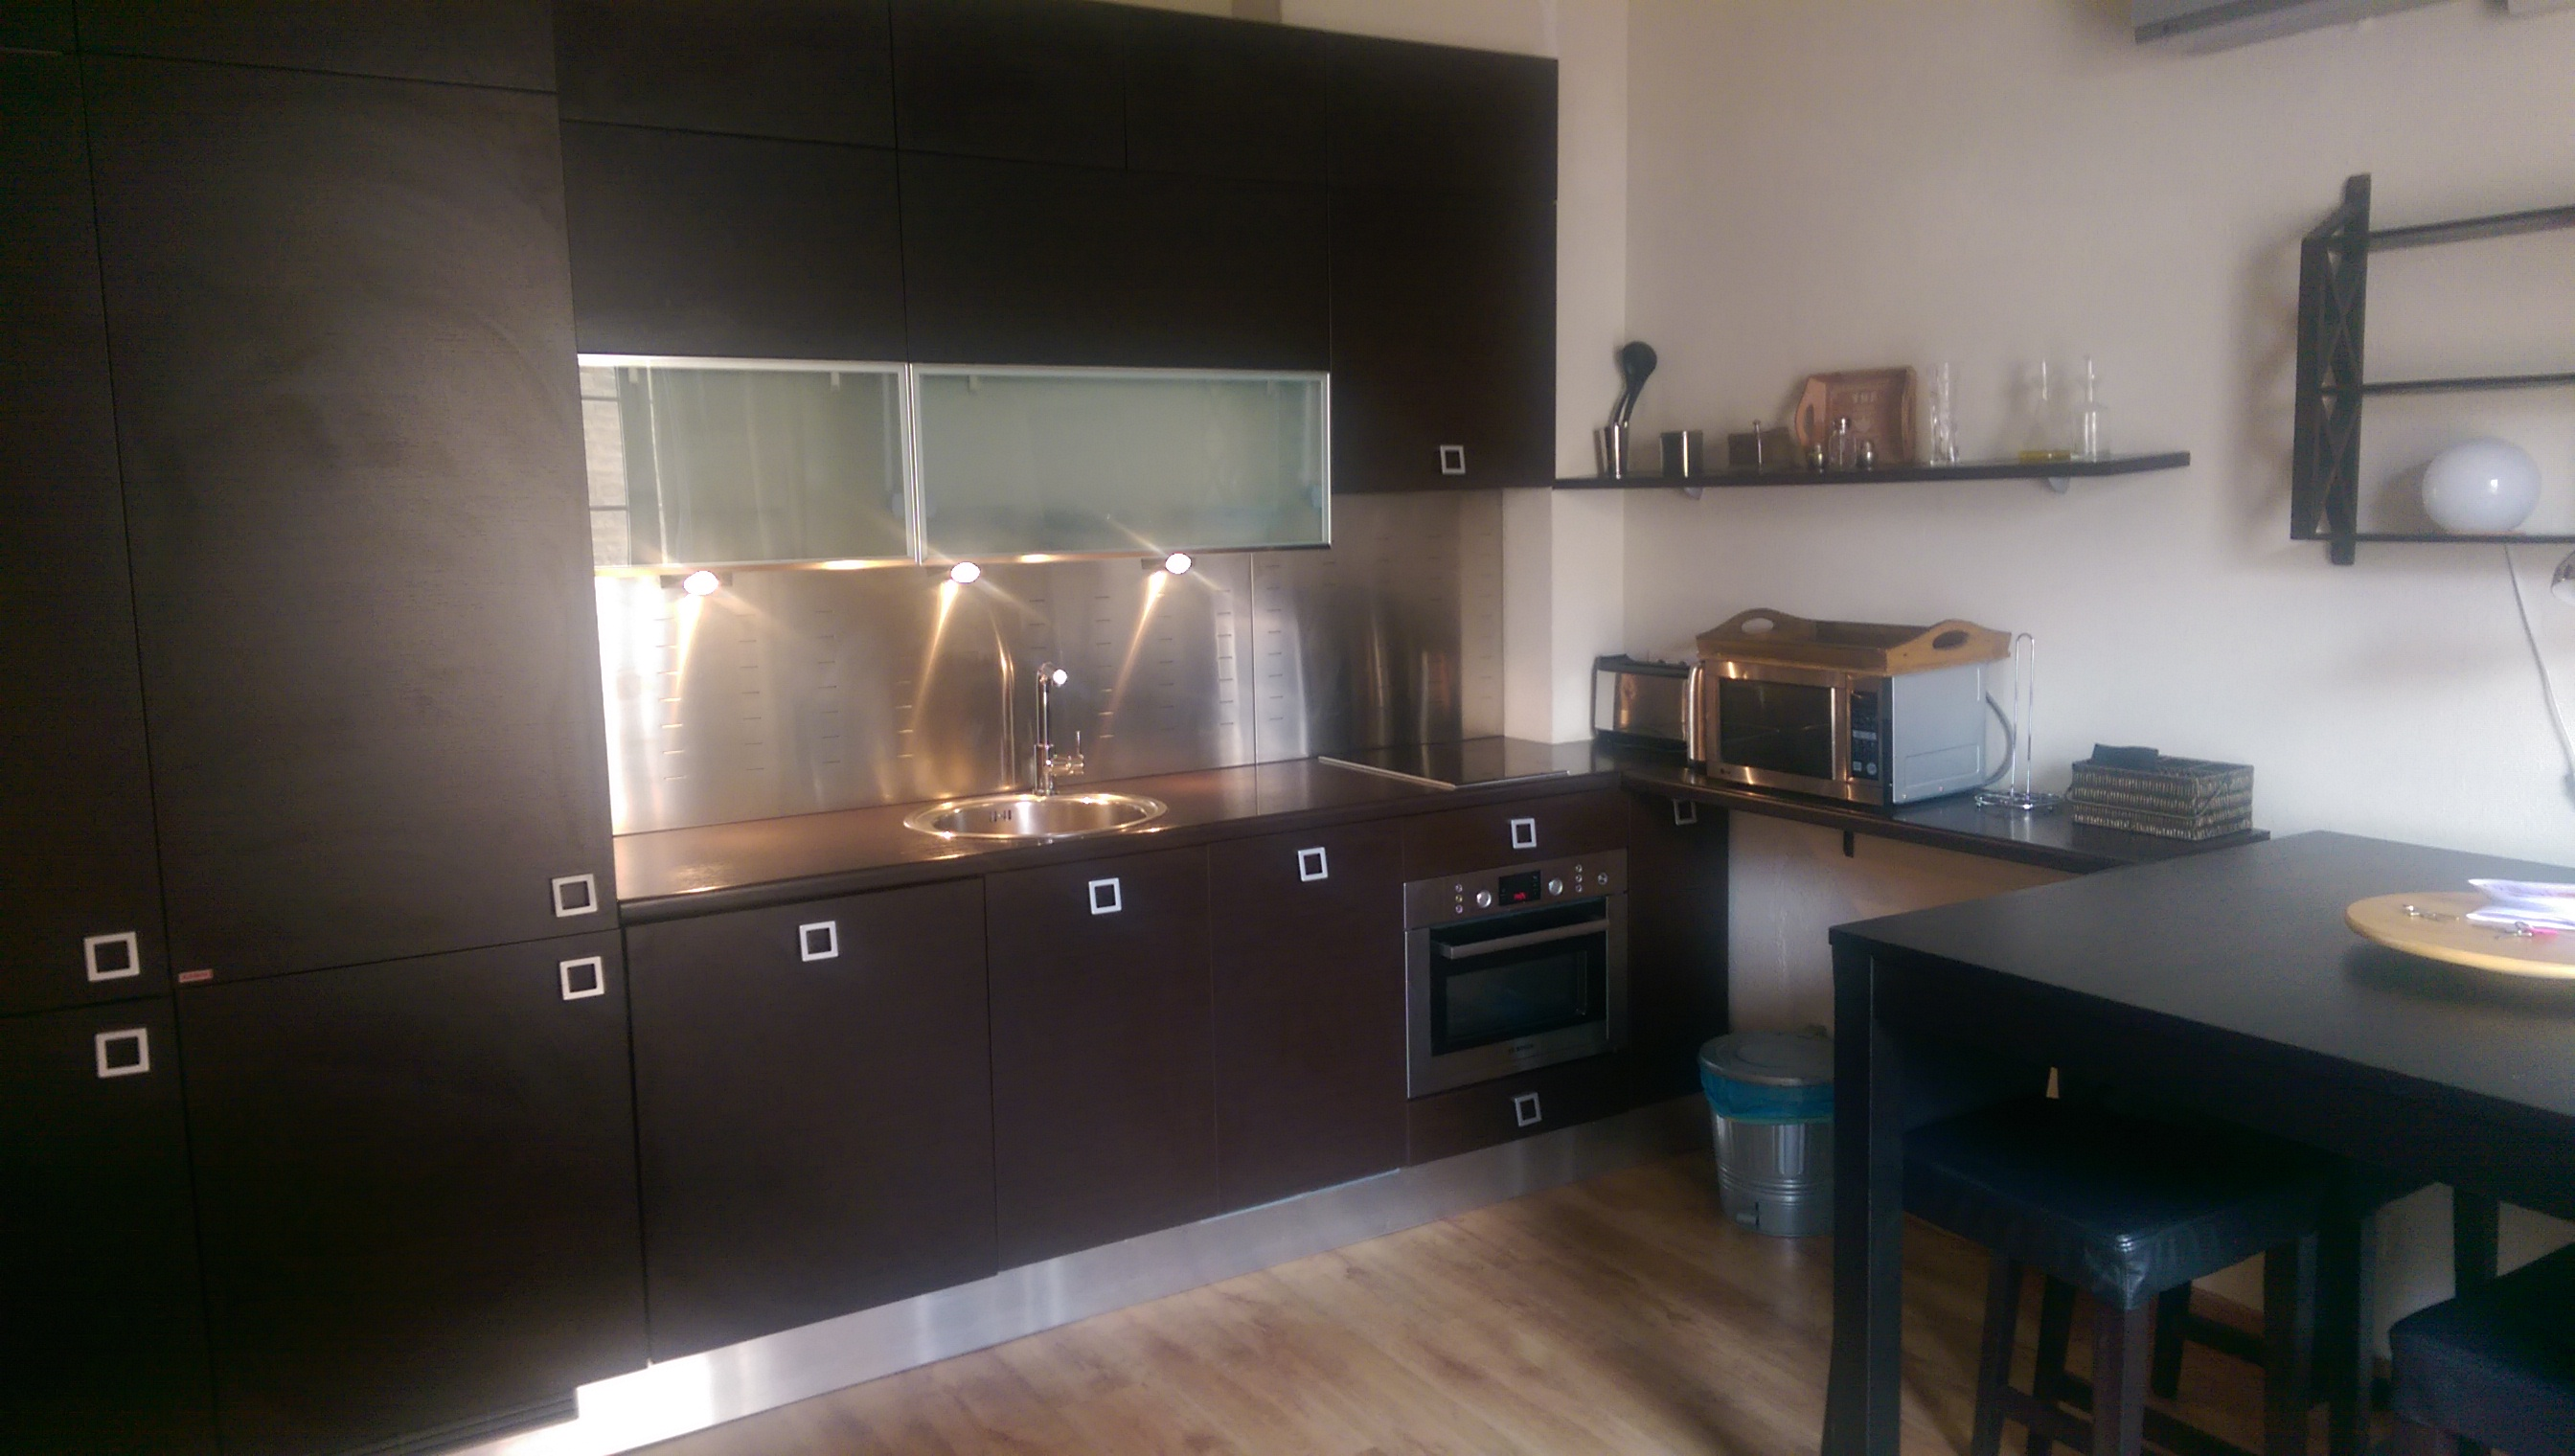 My Sweet Home Abroad Kitchen